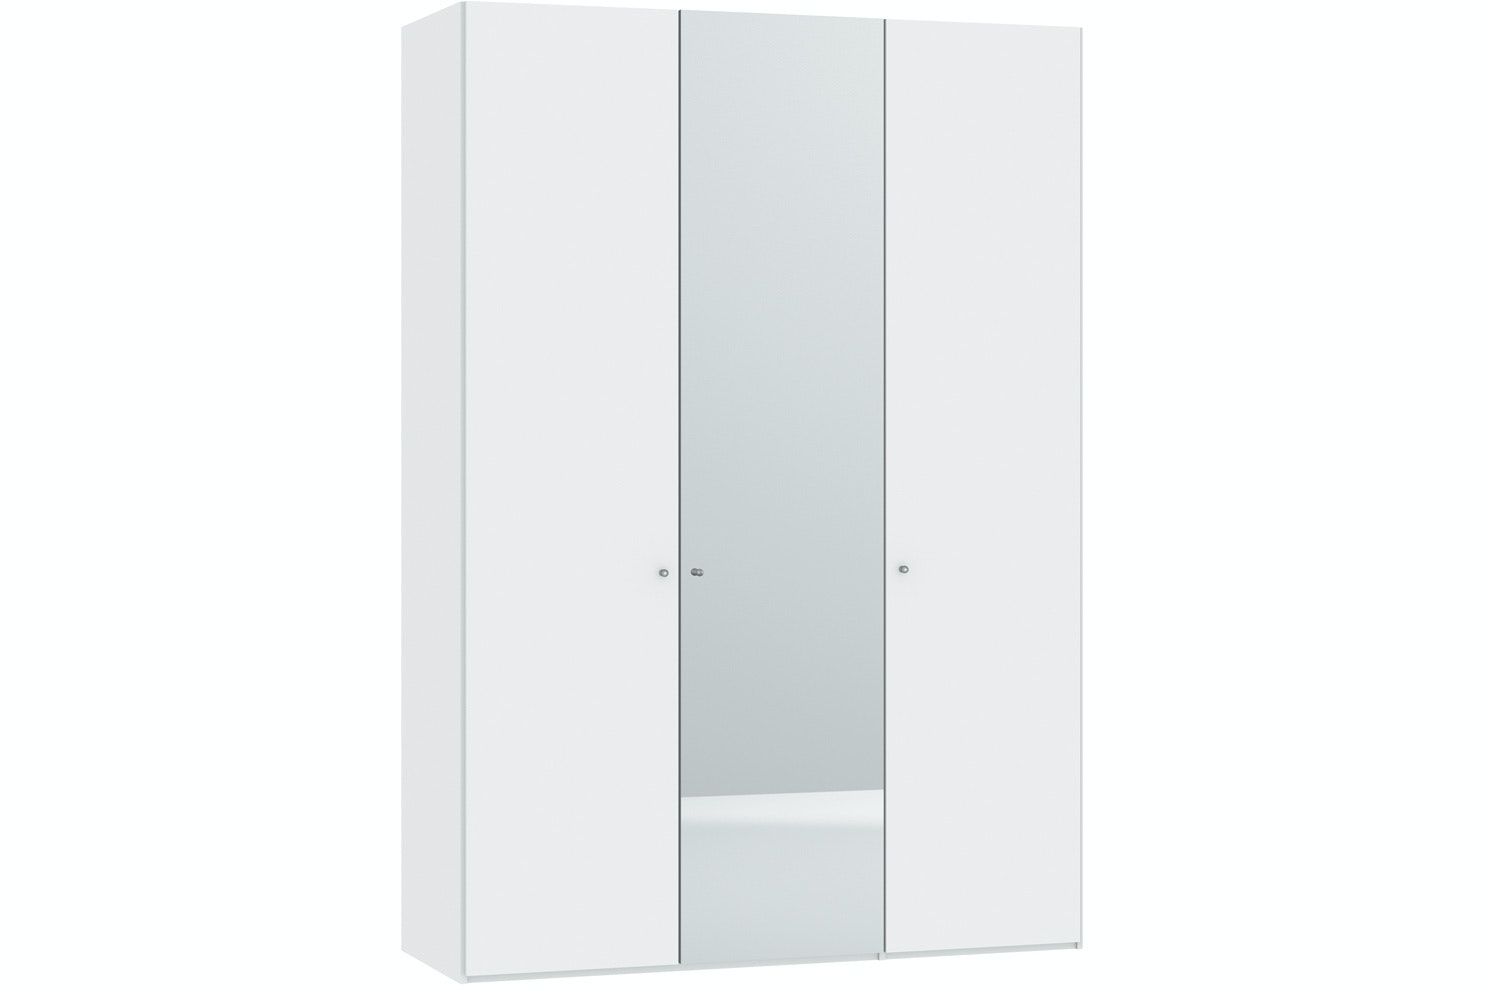 Meggan Hinged 3 Door Wardrobe 152Cm | White Glass Matt + Mirror